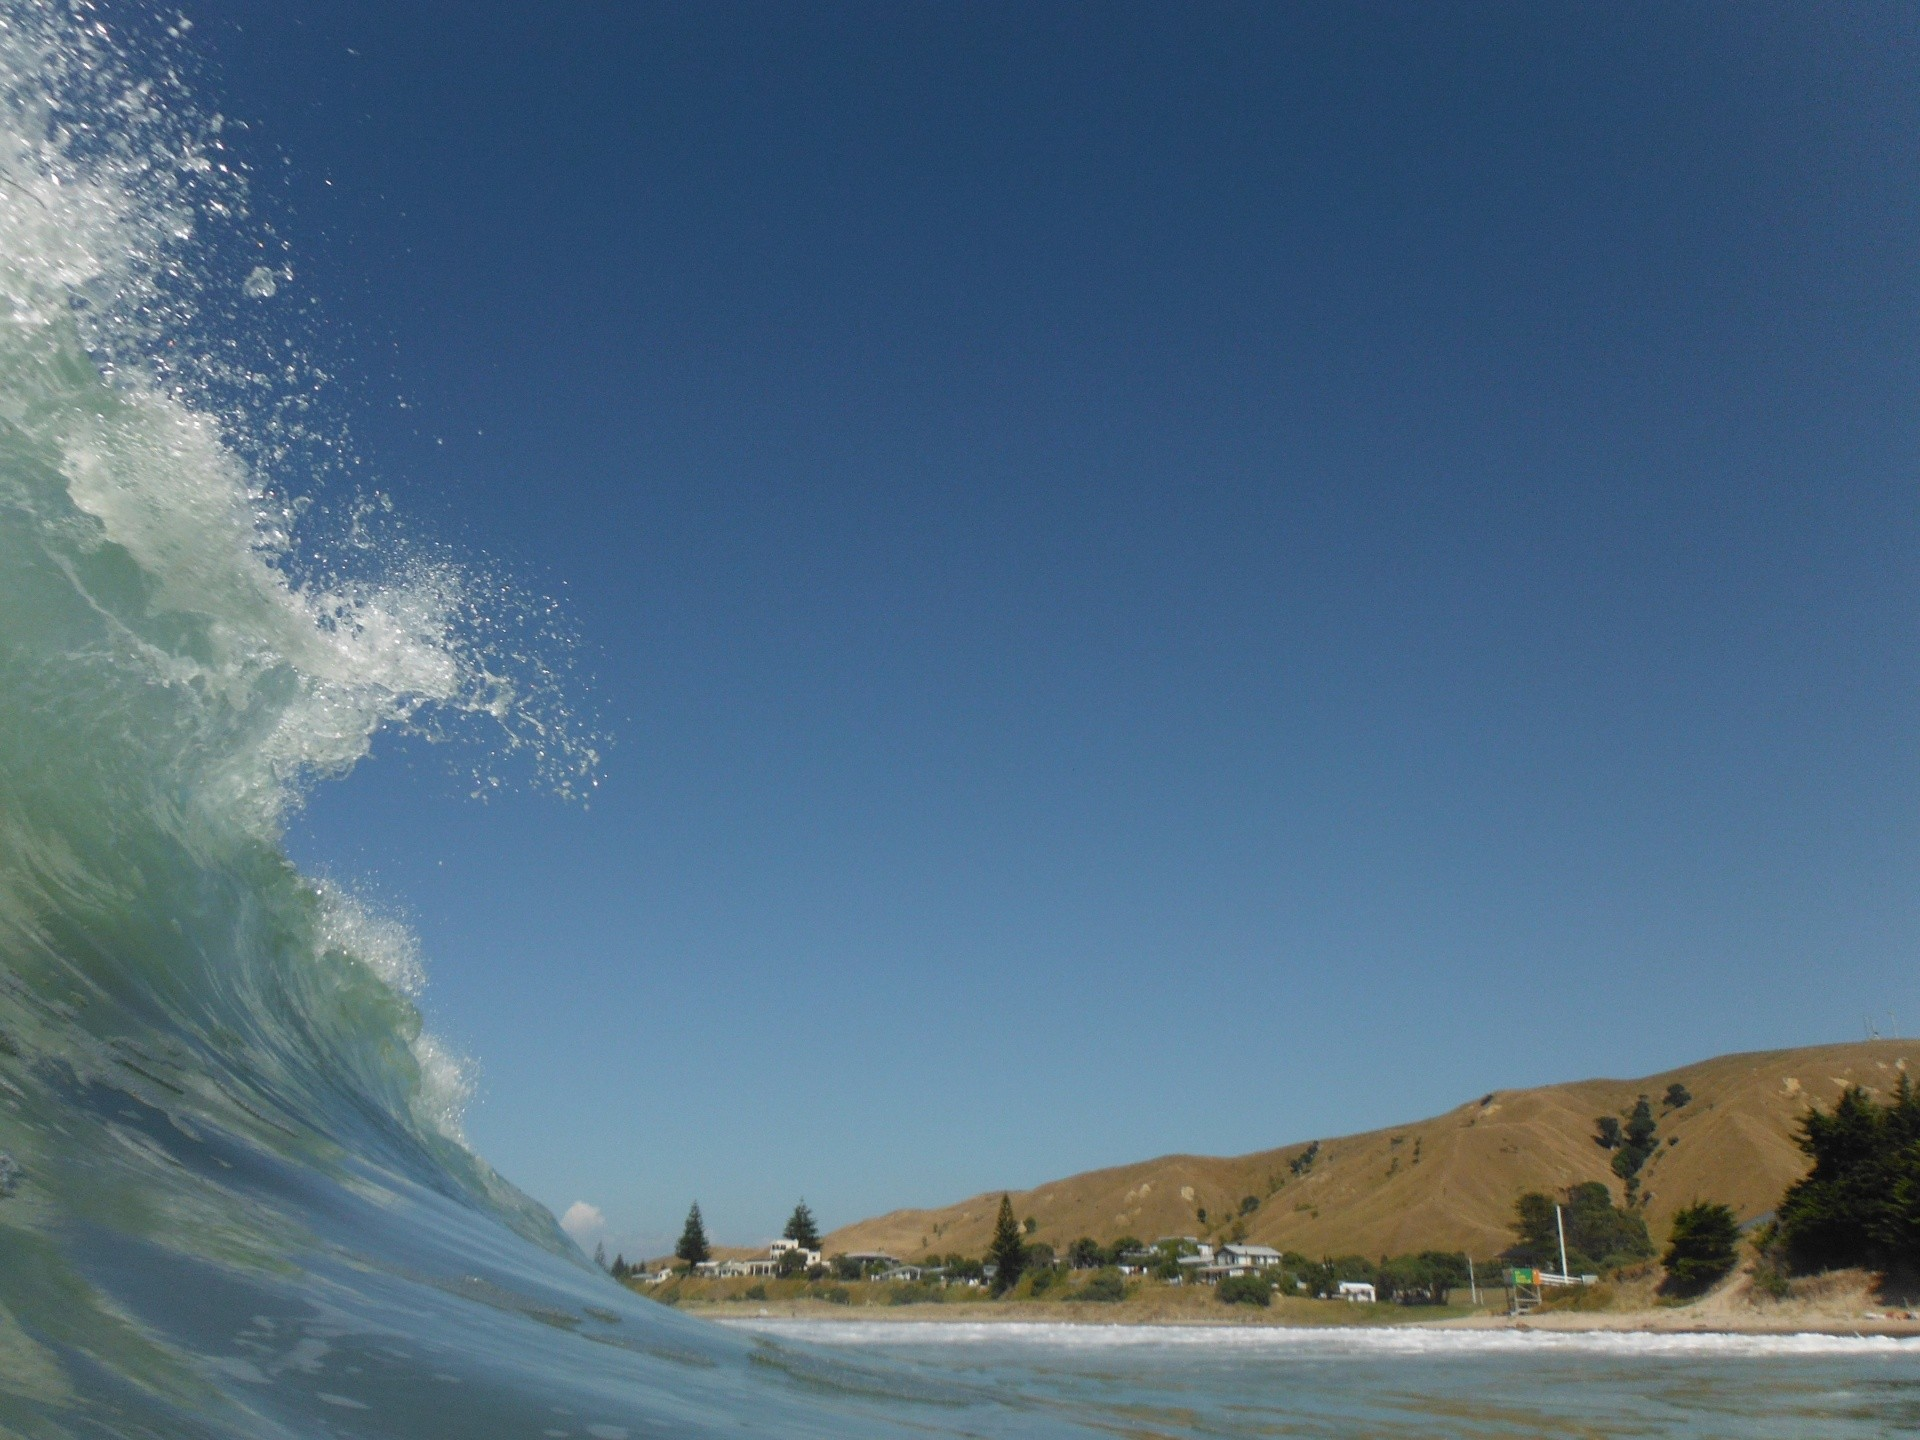 Daan van Oosten's photo of Gizzy Pipe (Gisborne)